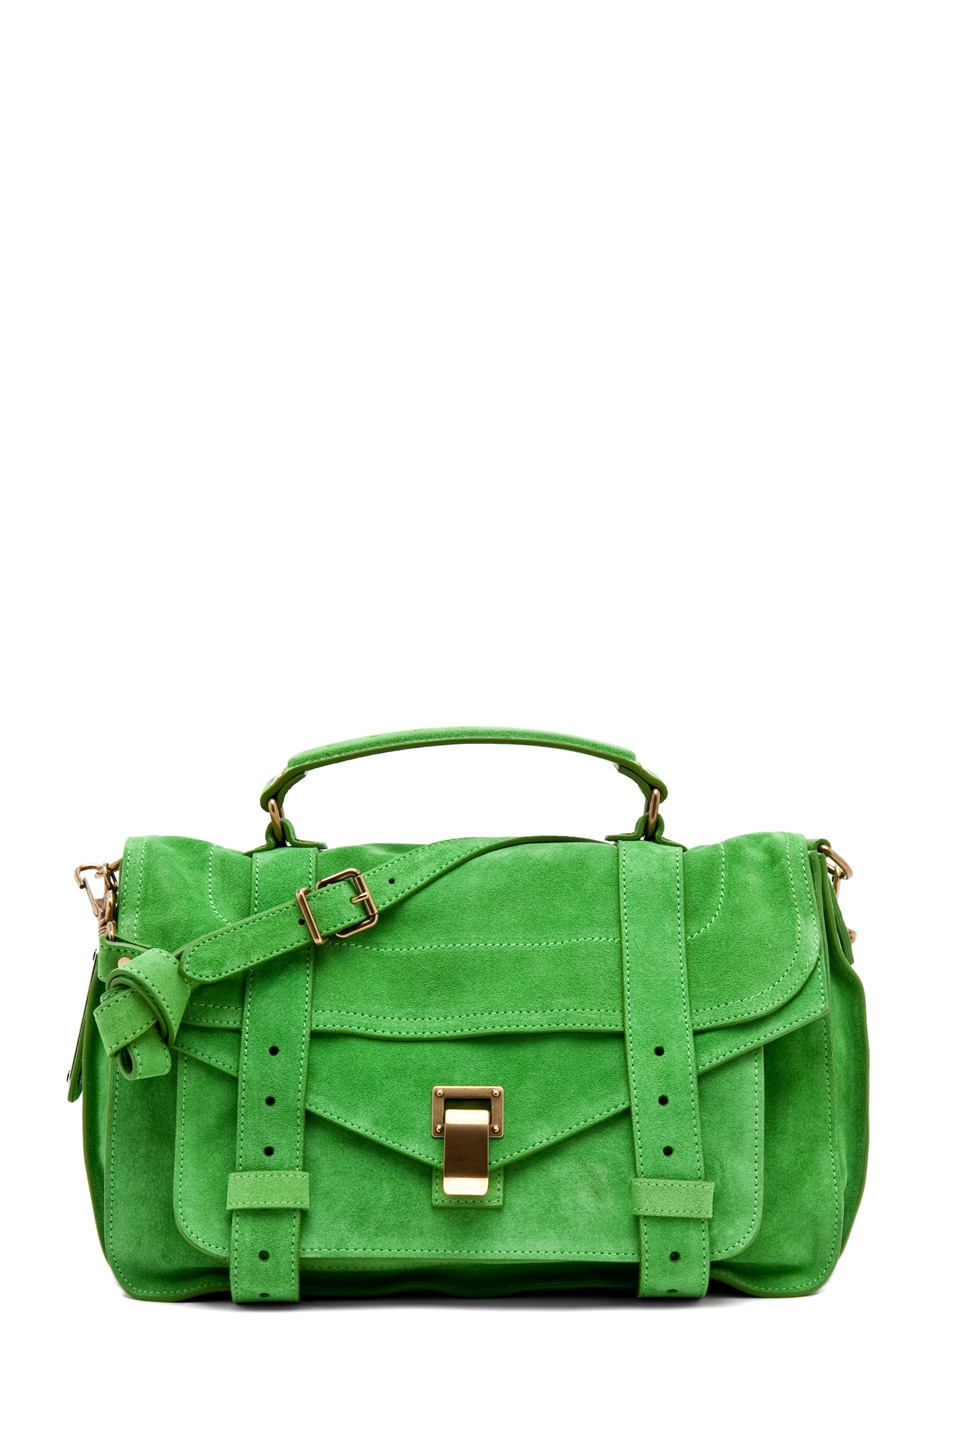 Image 1 of Proenza Schouler PS1 Medium Suede in Tropical Green